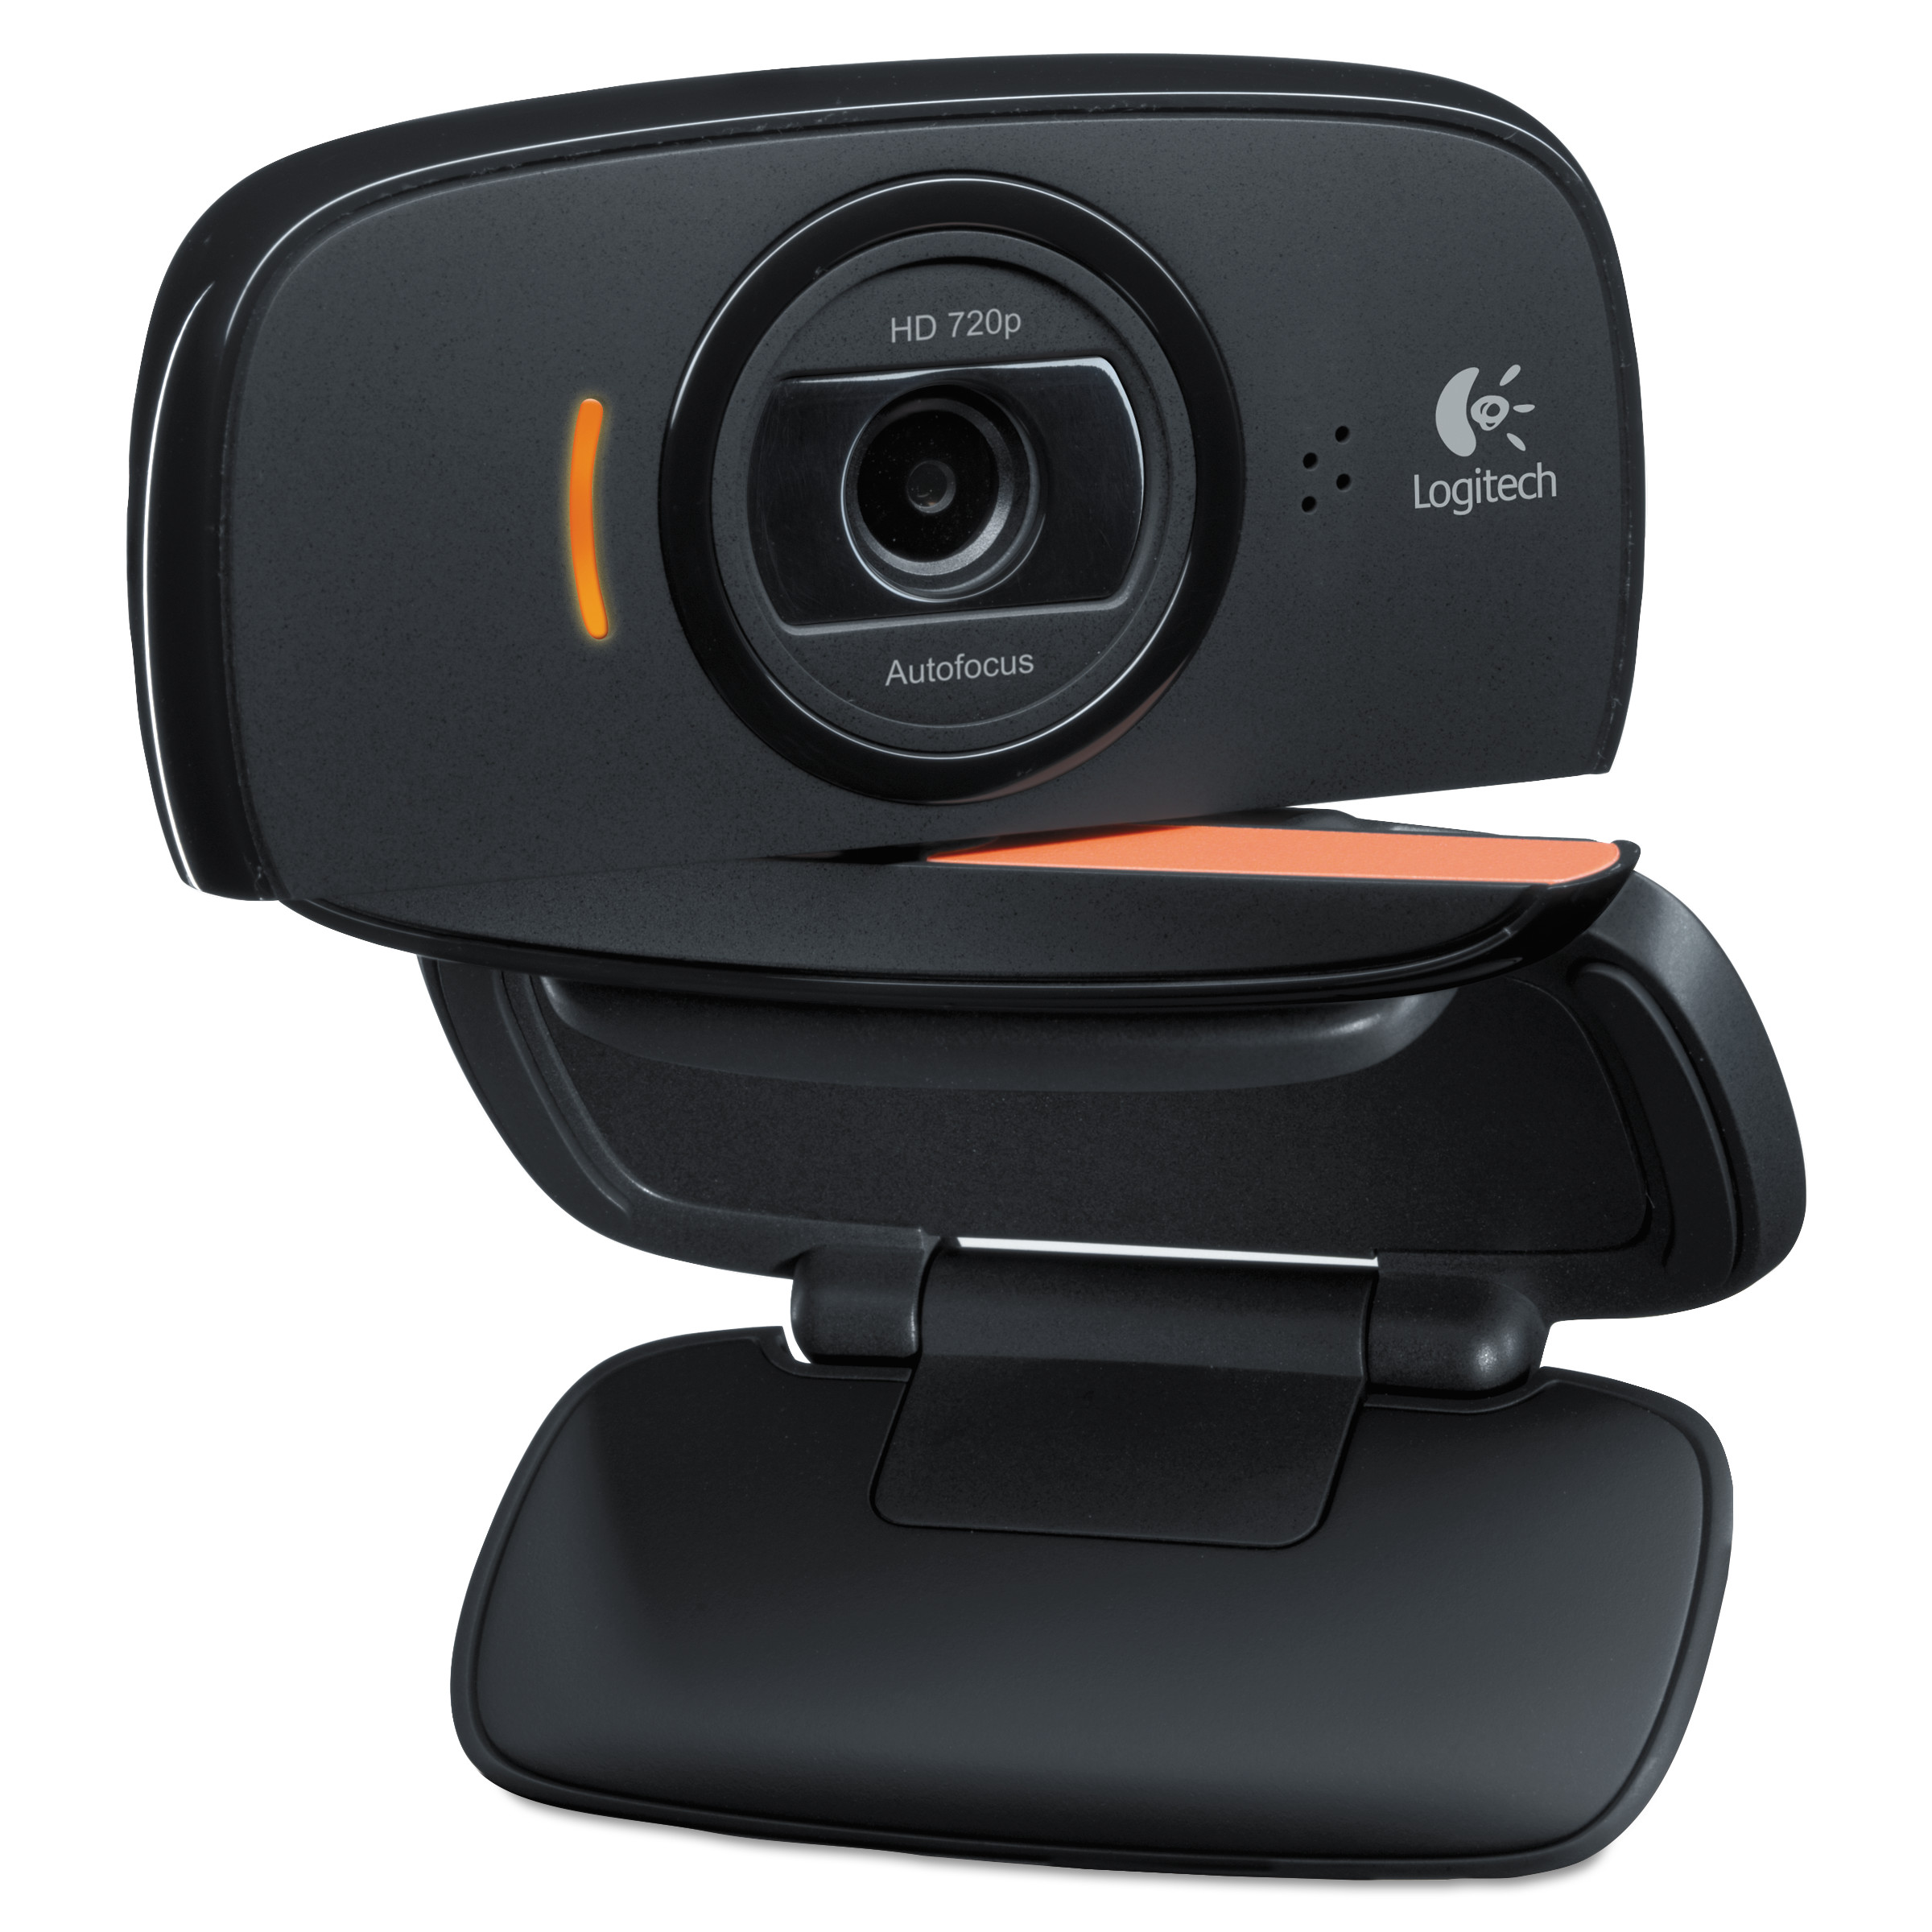 Logitech Hd Webcam C525 Portable Hd 720p Video Calling With Autofocus Walmart Com Walmart Com